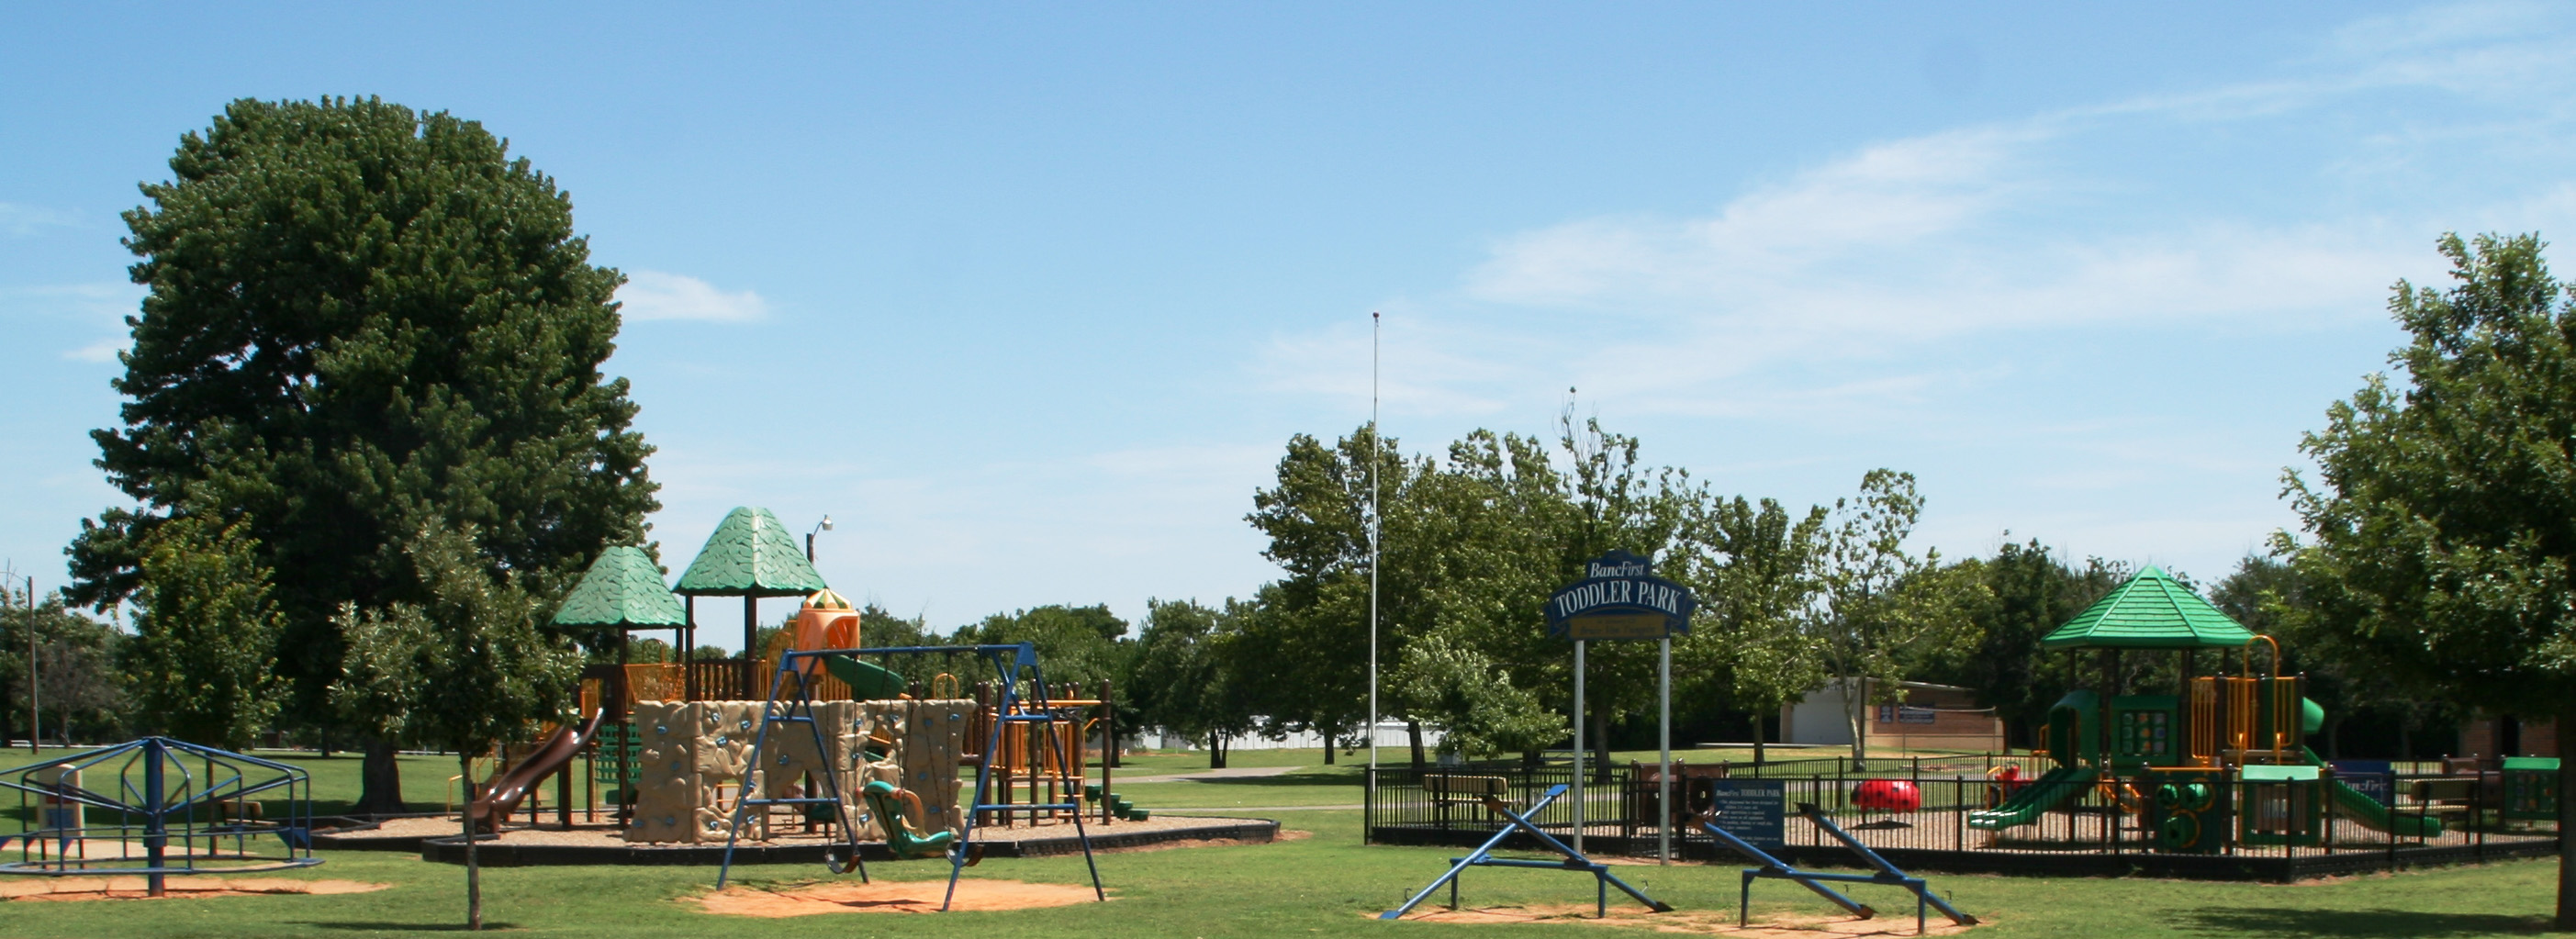 Bancfirst Toddler Park at Rader Park